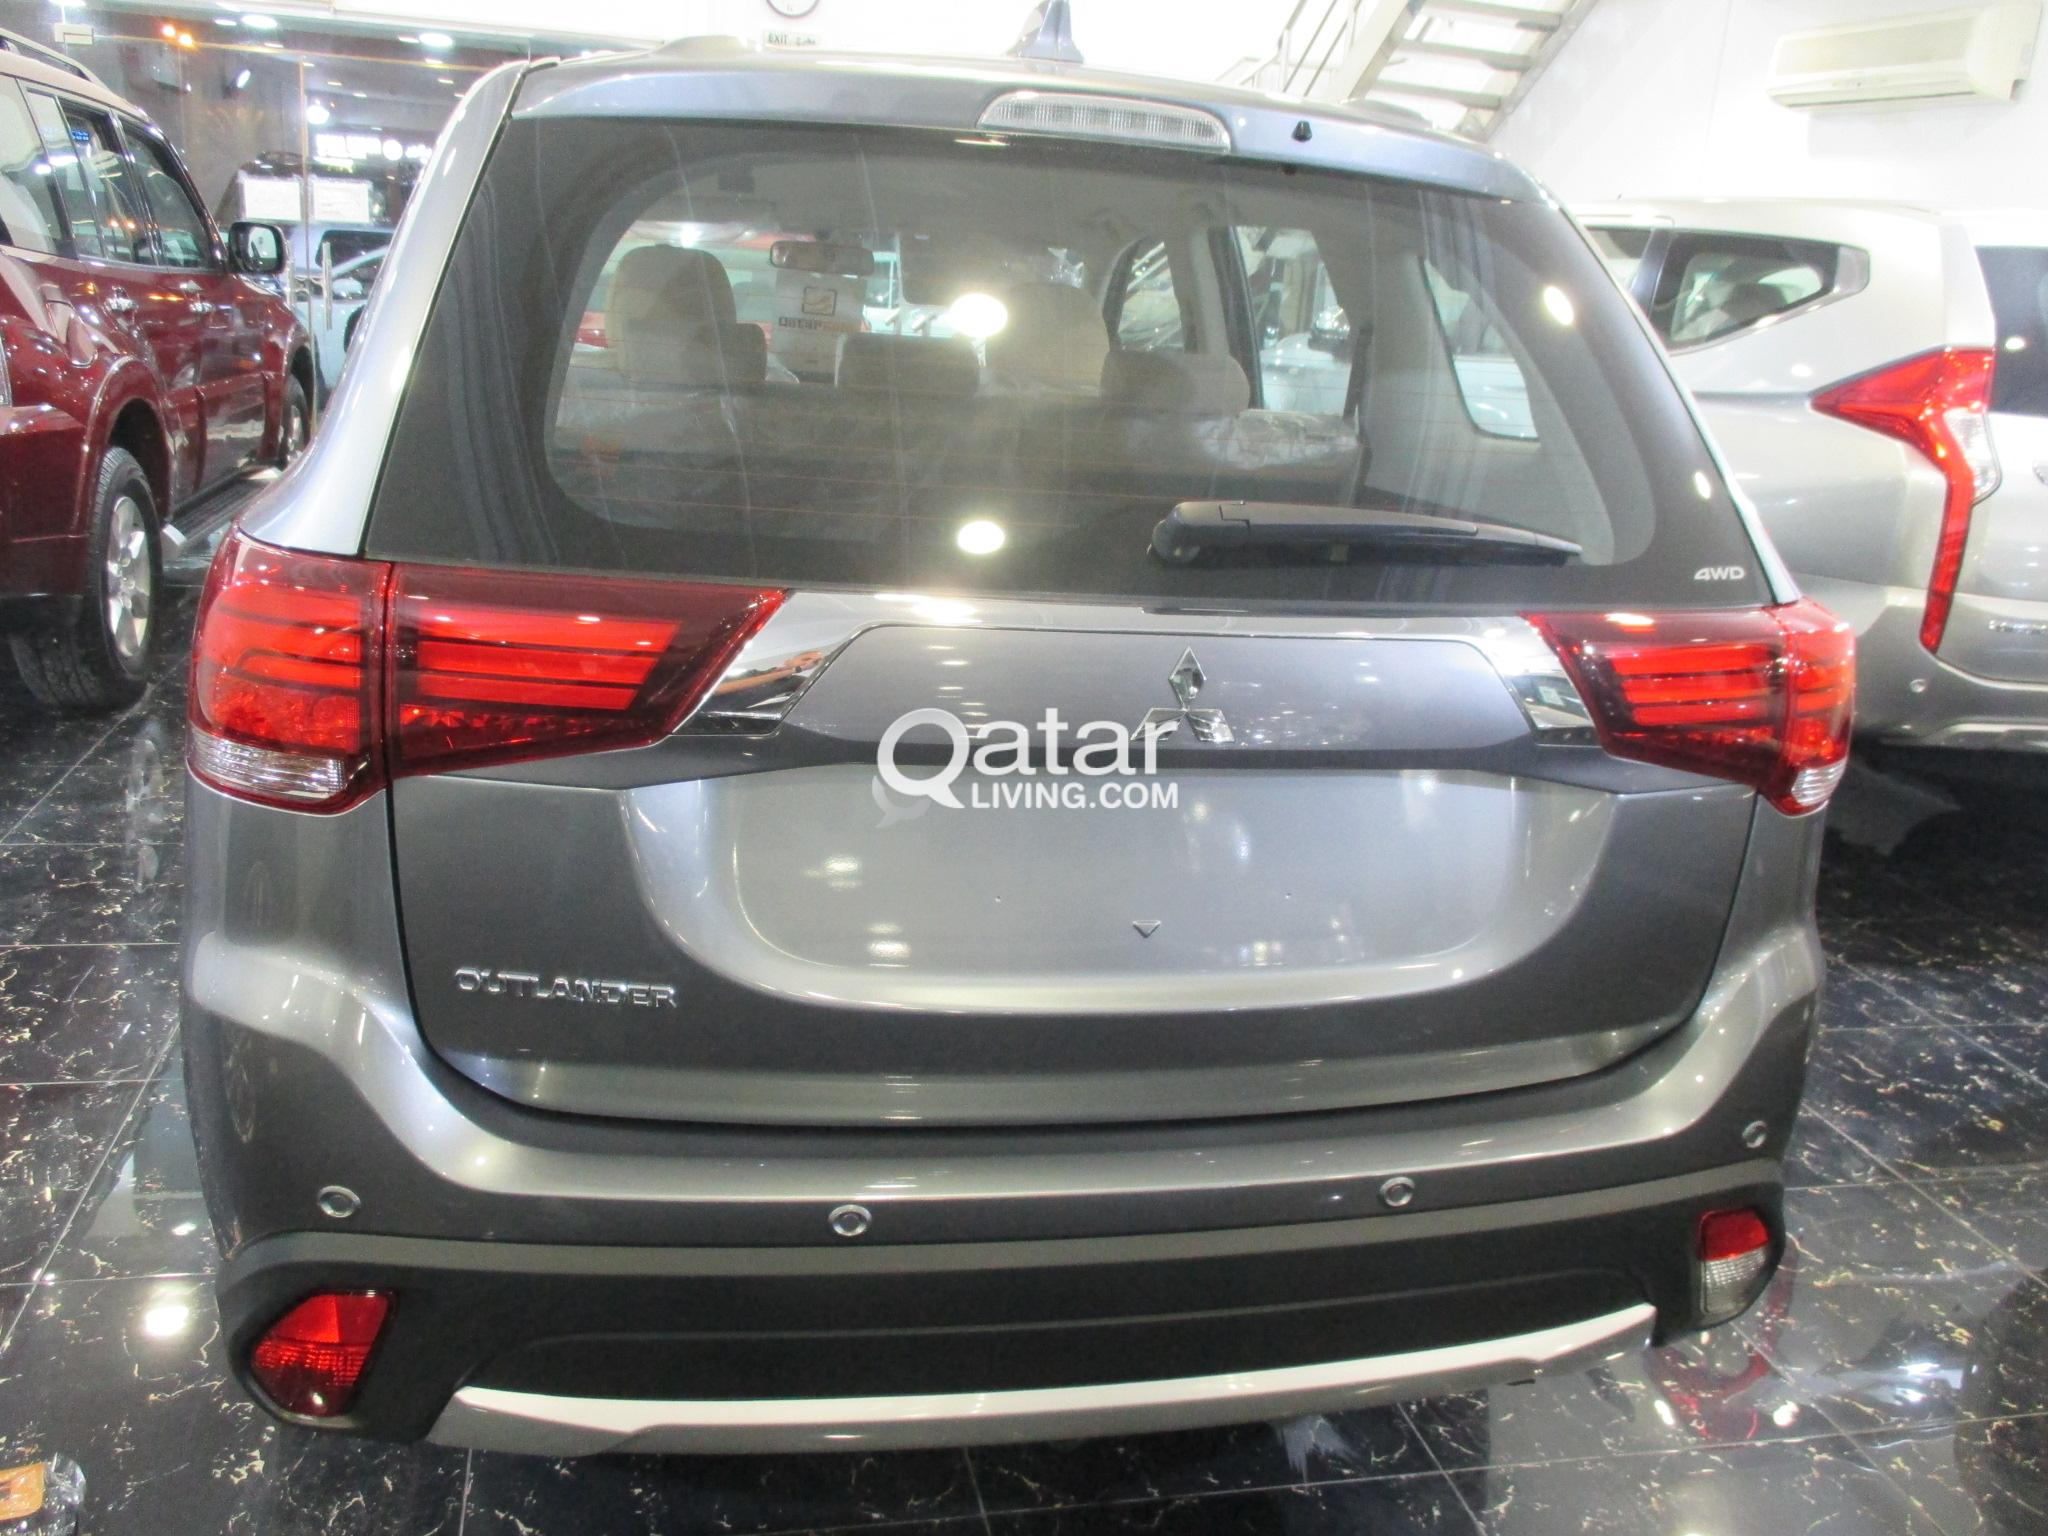 2018 OUTLANDER 2.4L 4 CLY